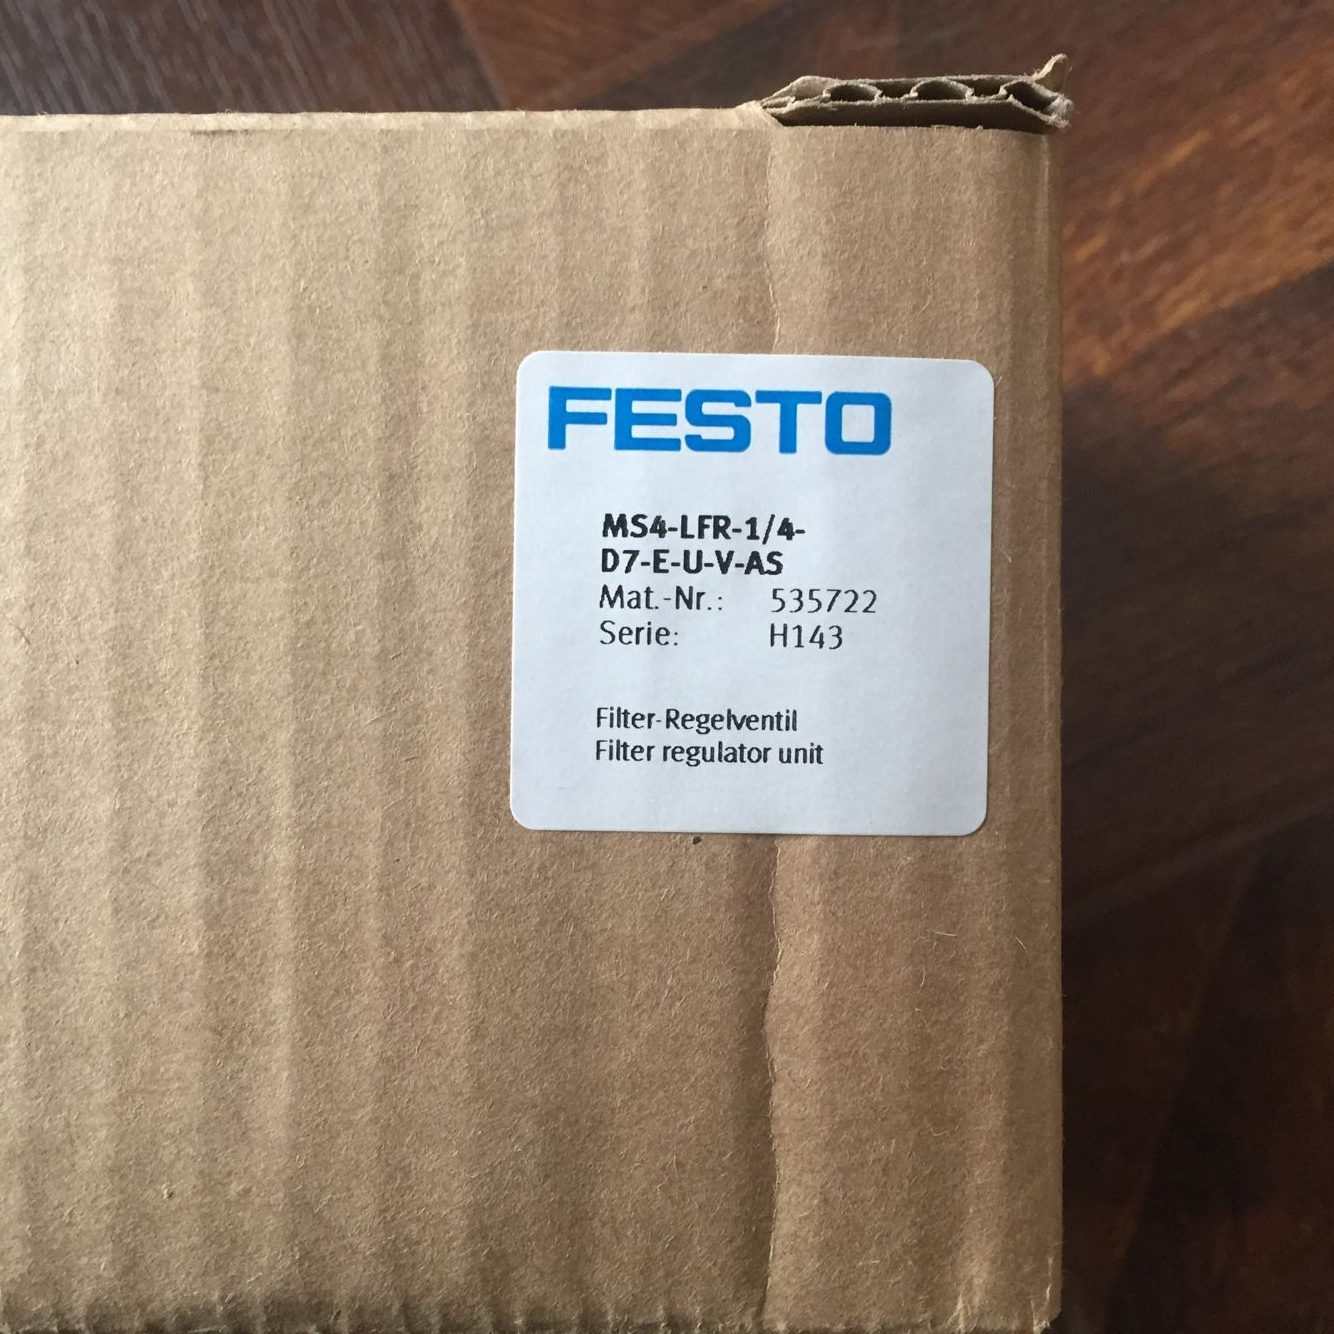 FESTO MS4-LFR-1/4-D7-E-U-V-AS 535722